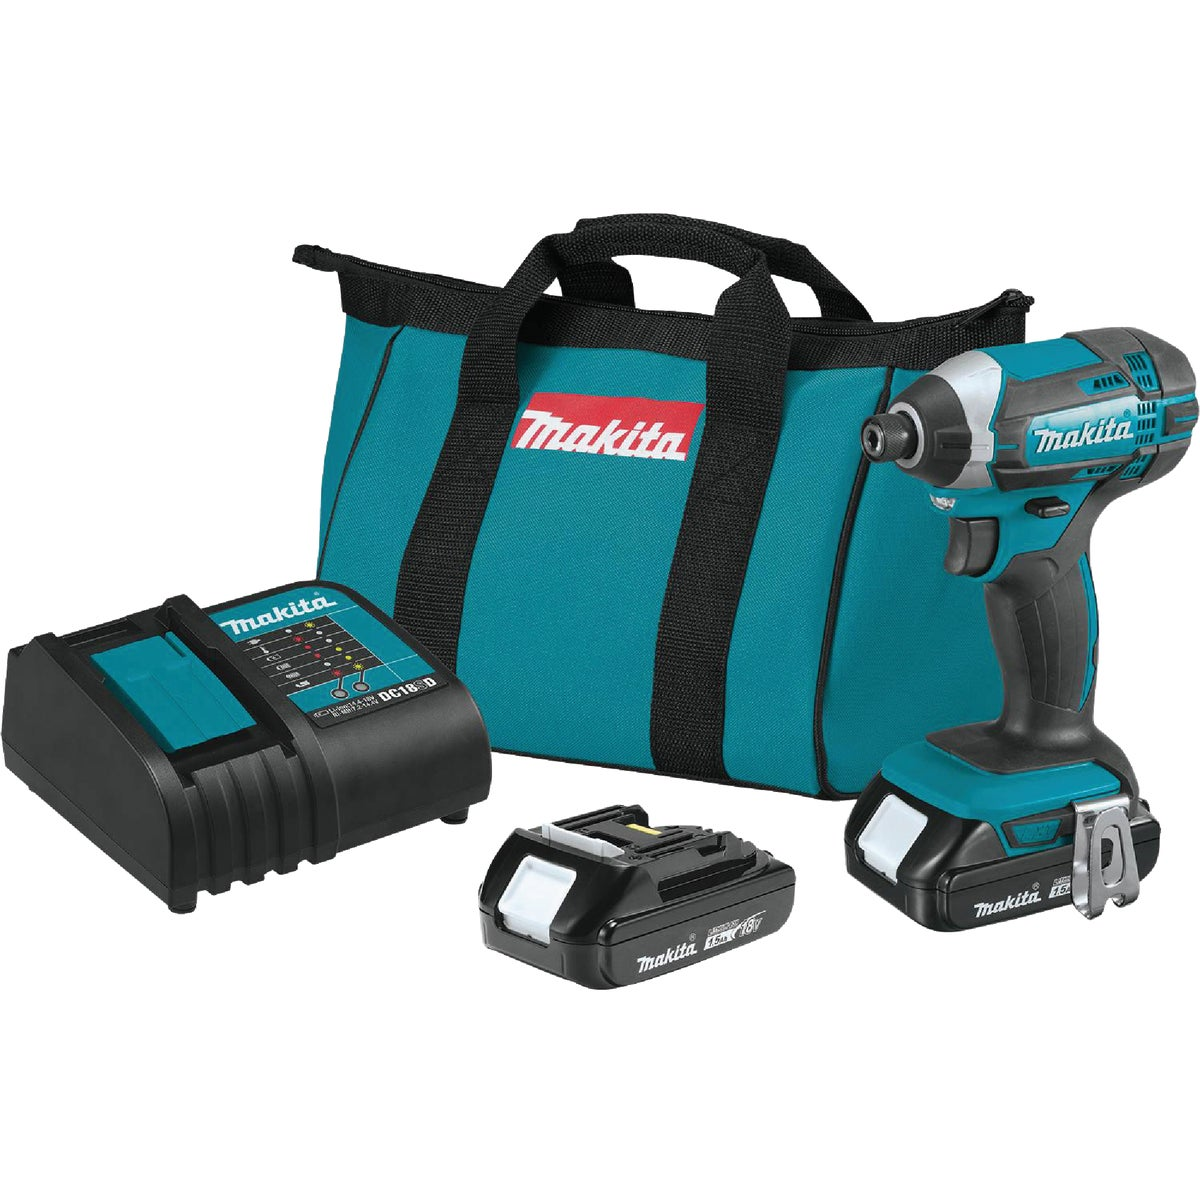 CRDLSS 18V IMPACT DRIVER - LXDT04CW by Makita Usa Inc